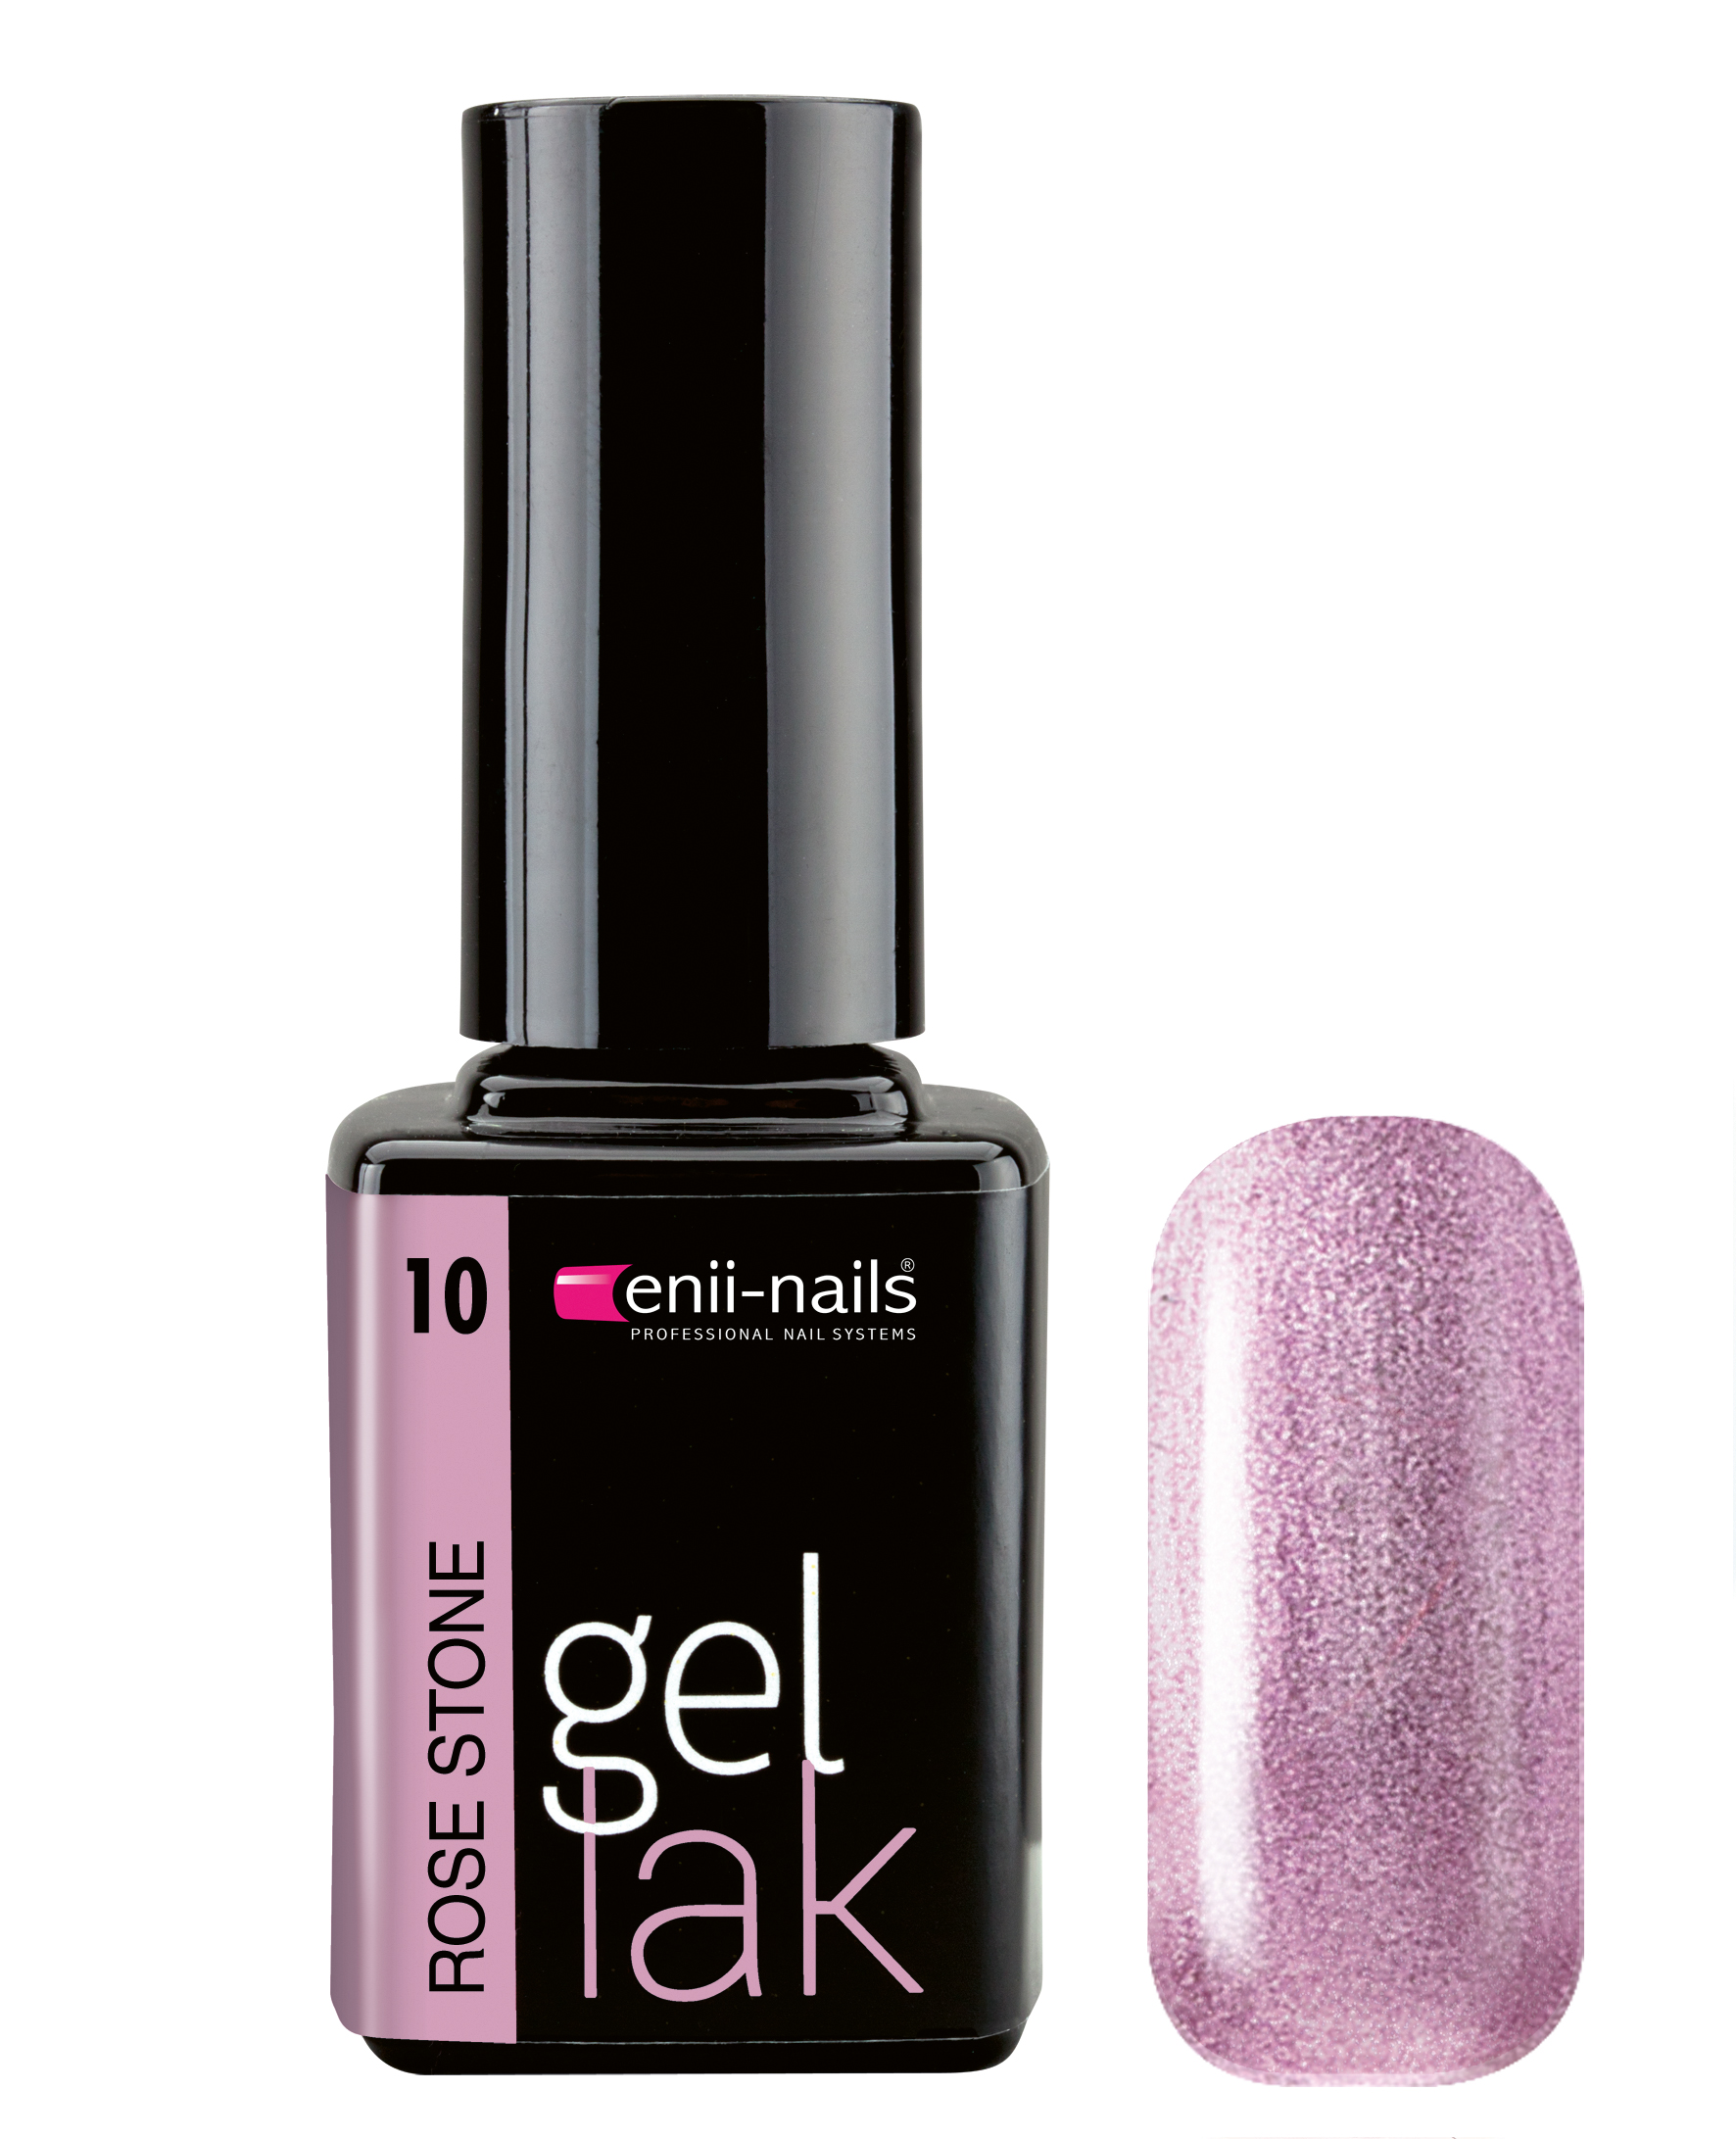 ENII-NAILS Gel lak 11 ml Rose Stone